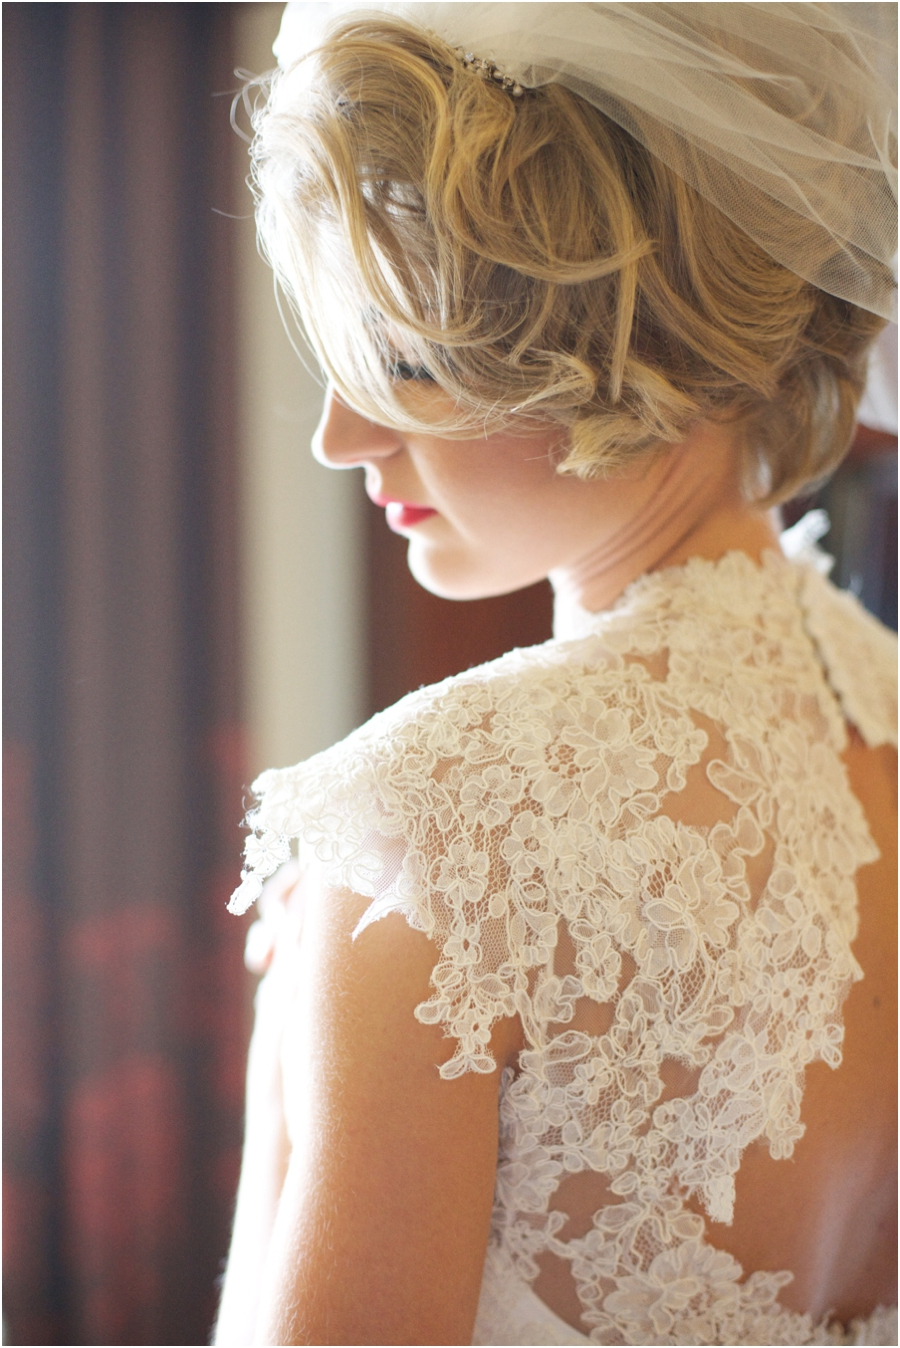 intricate lace details on wedding dress, southern bridal portraits